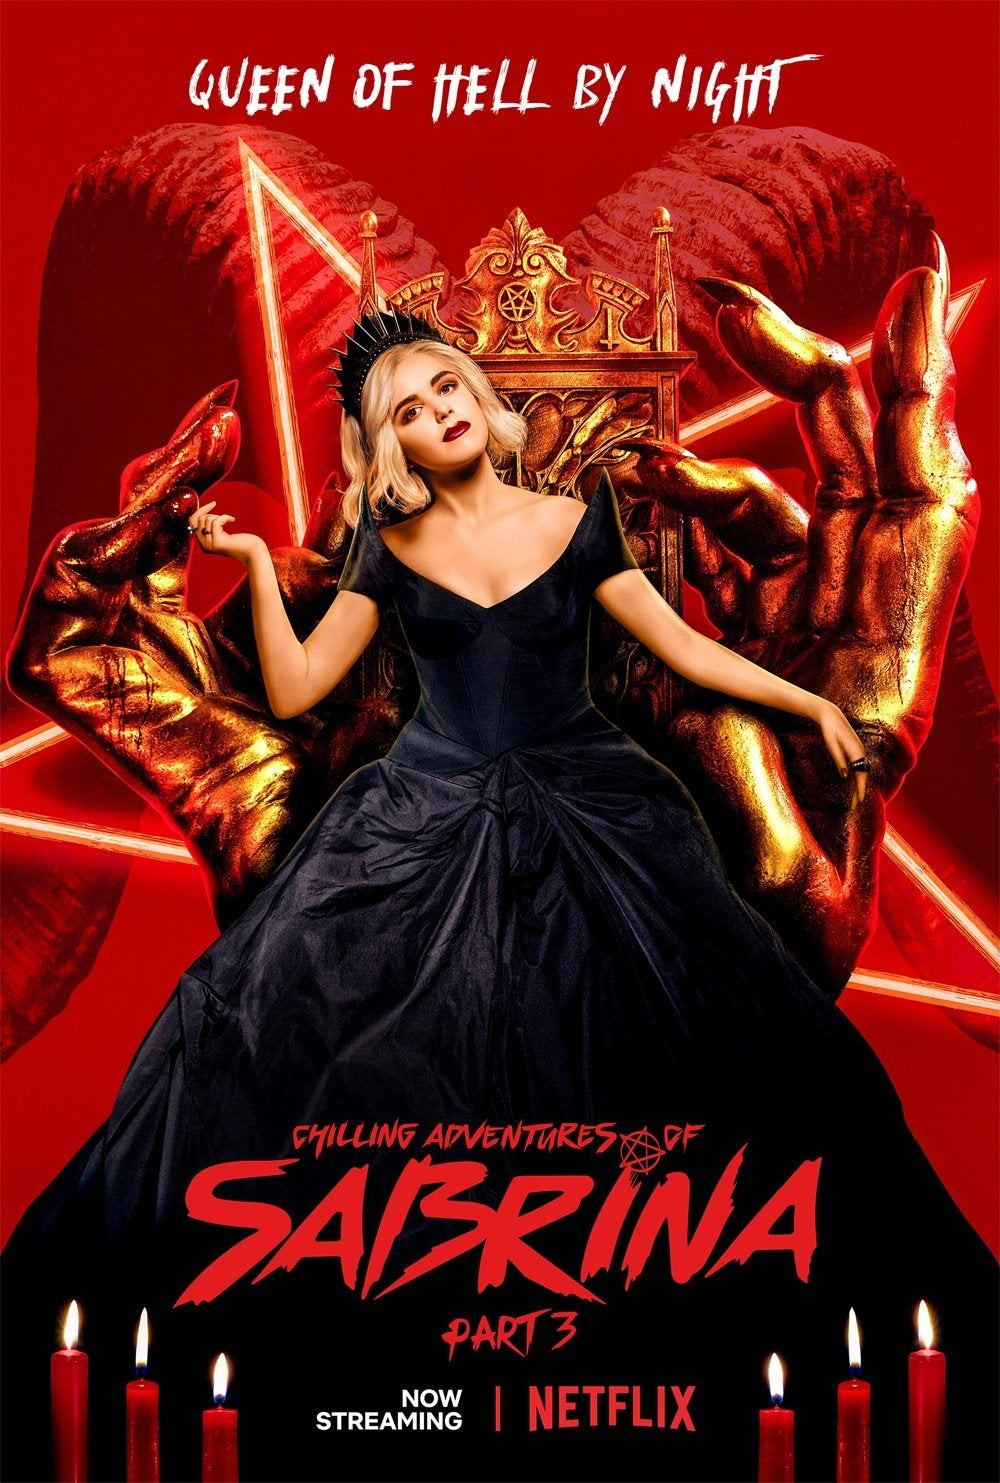 chilling adventures of sabrina celebrates part 3 release with new poster